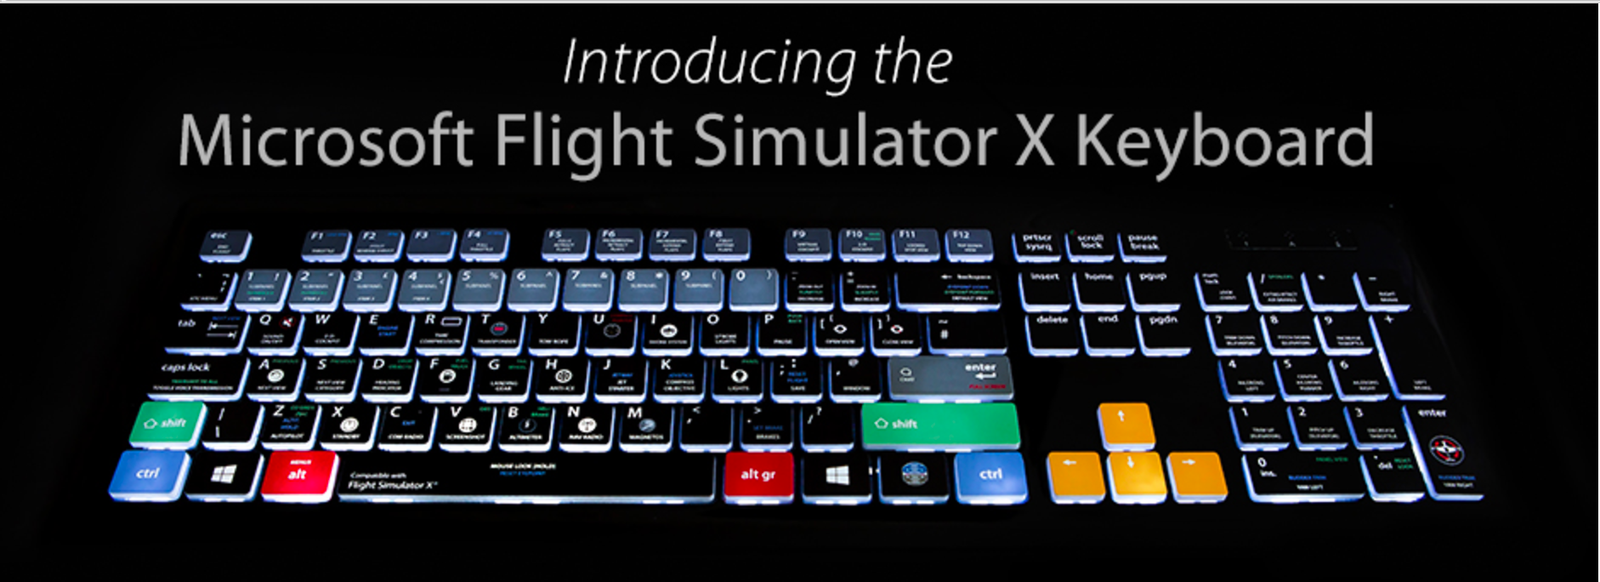 The dedicated backlit keyboard for Microsoft Flight Simulator X